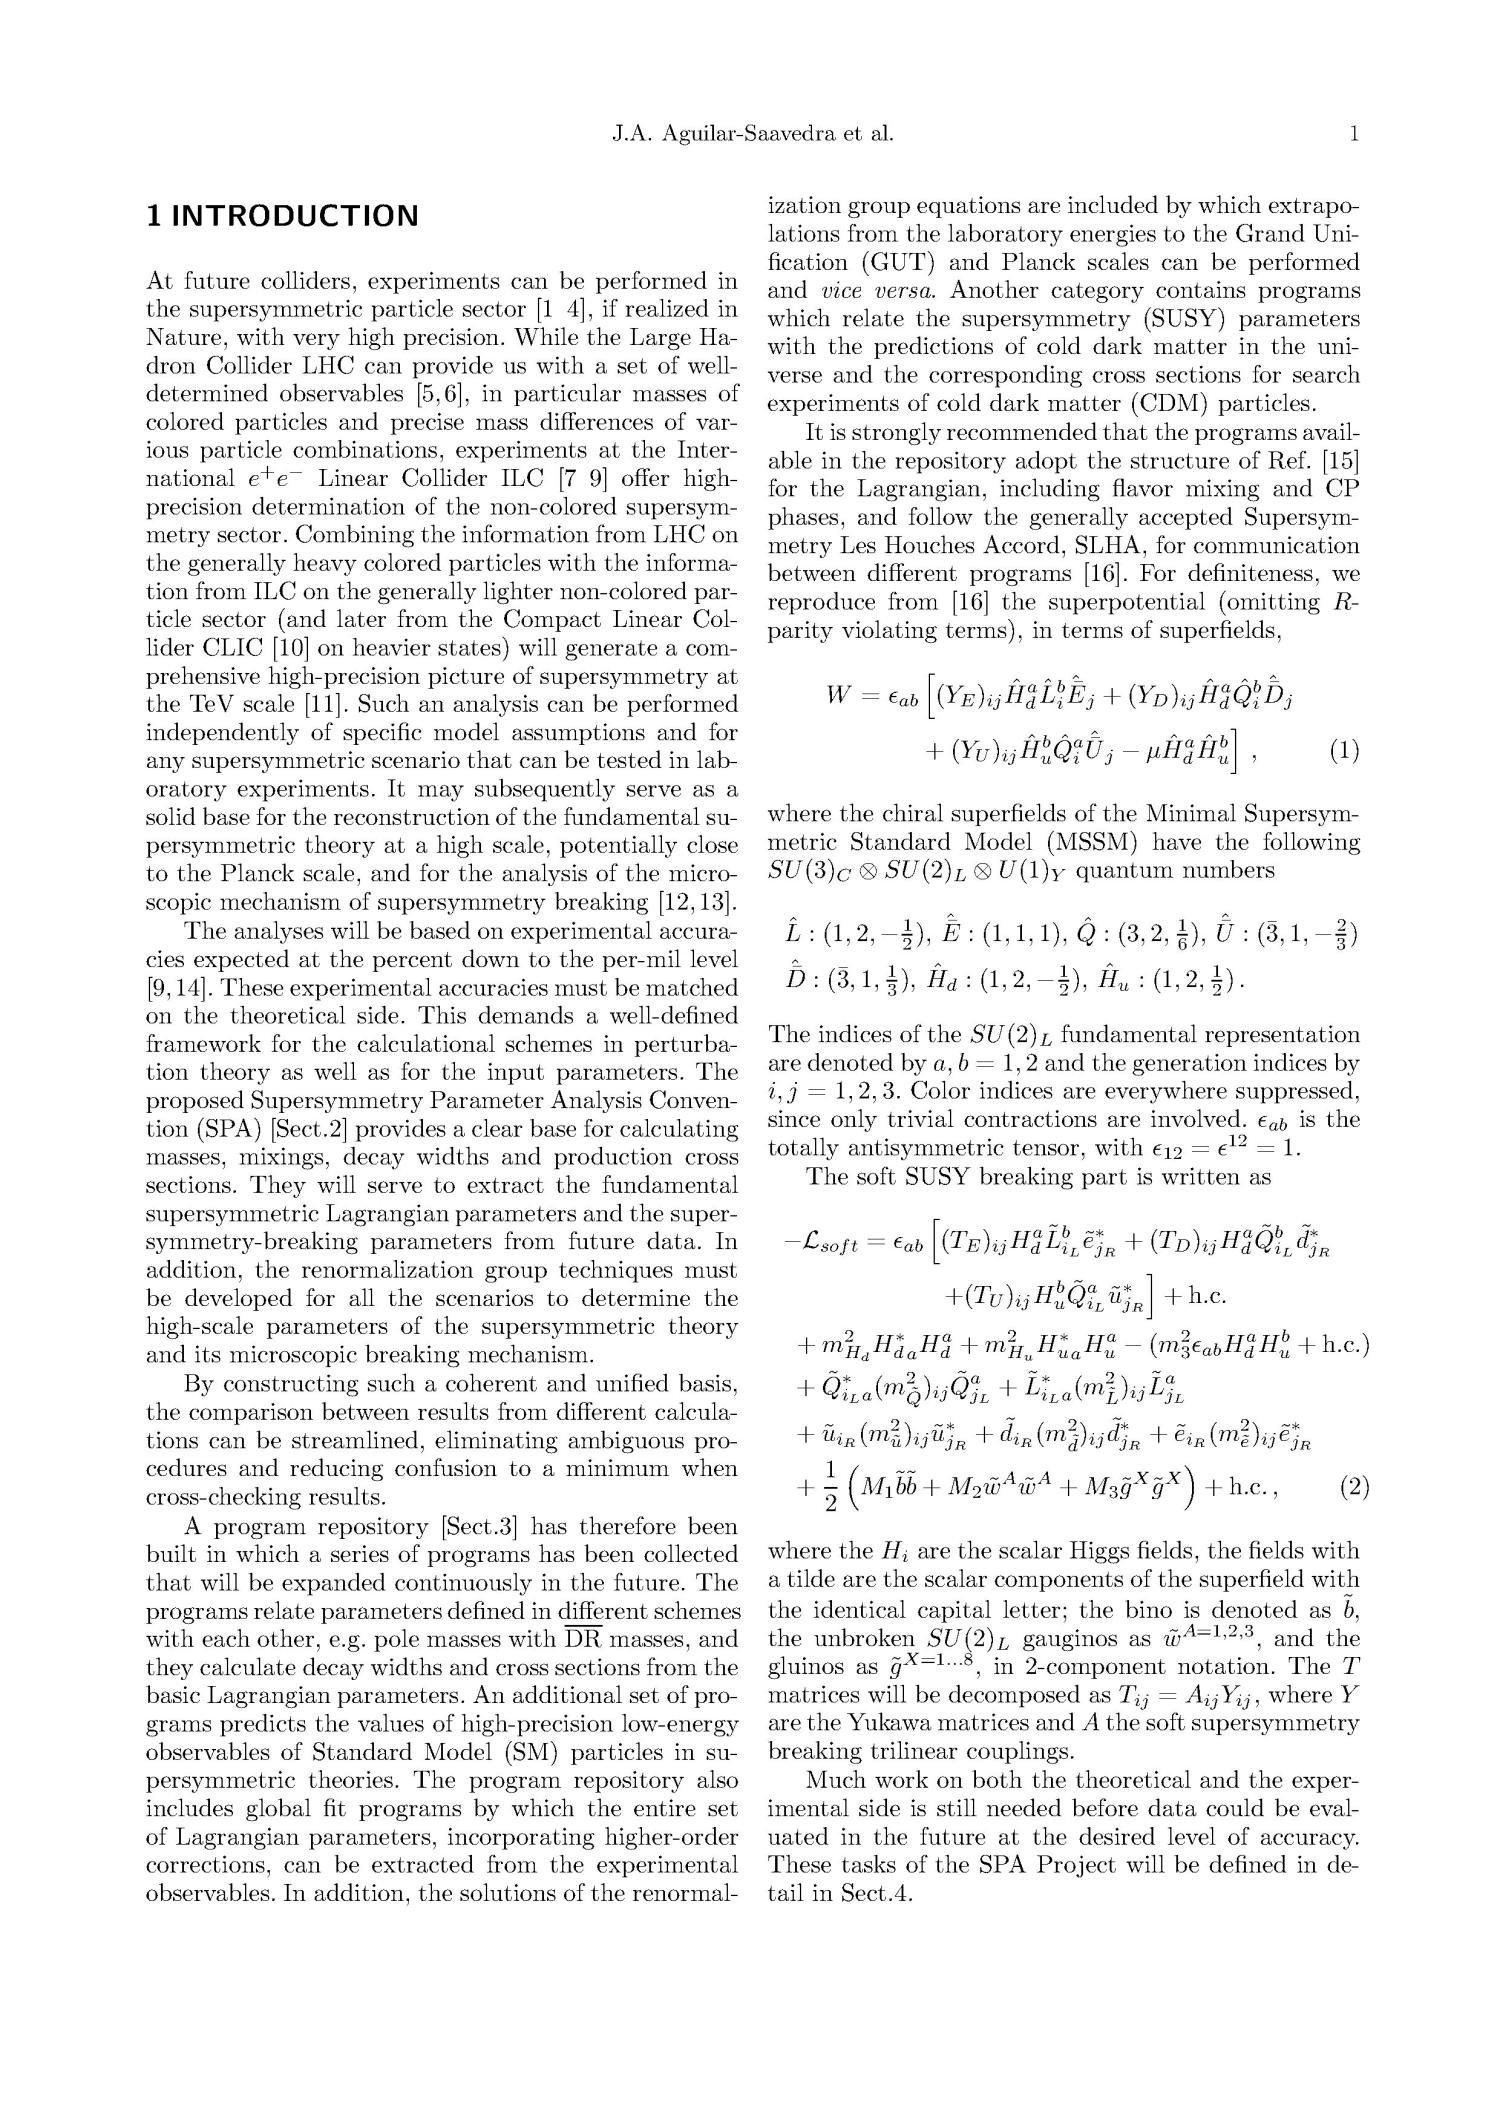 Supersymmetry Parameter Analysis: SPA Convention andProject                                                                                                      [Sequence #]: 3 of 19